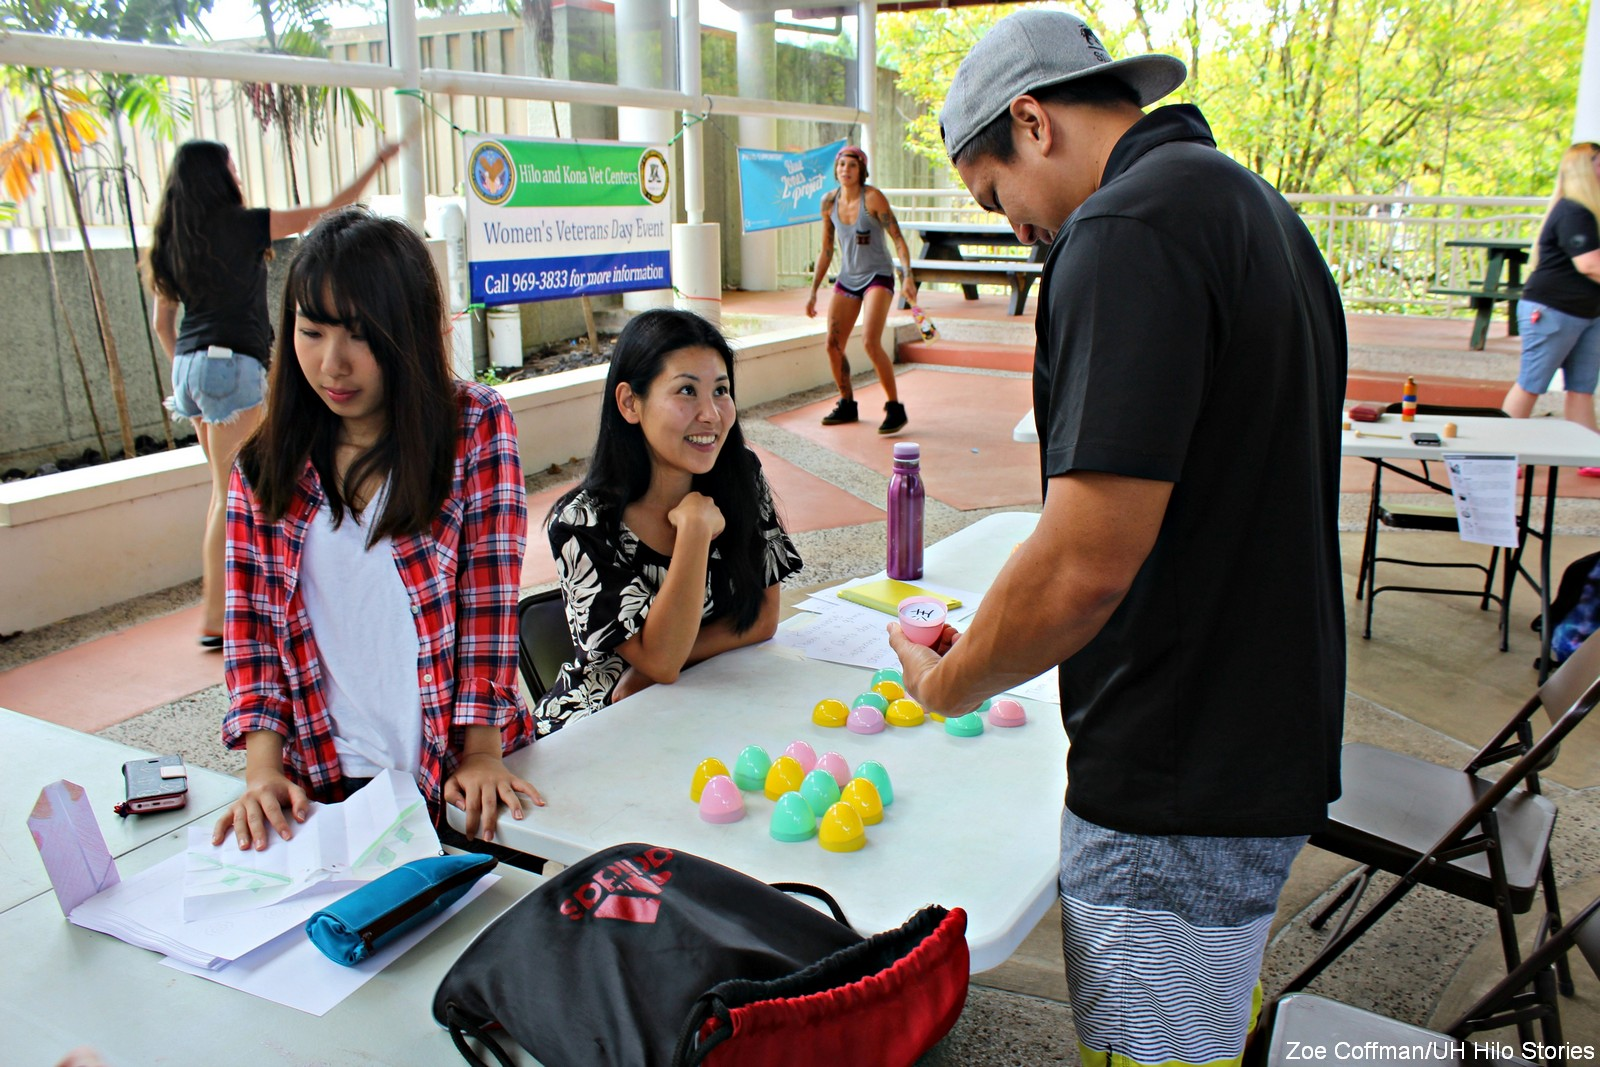 Students at a table set up at event.